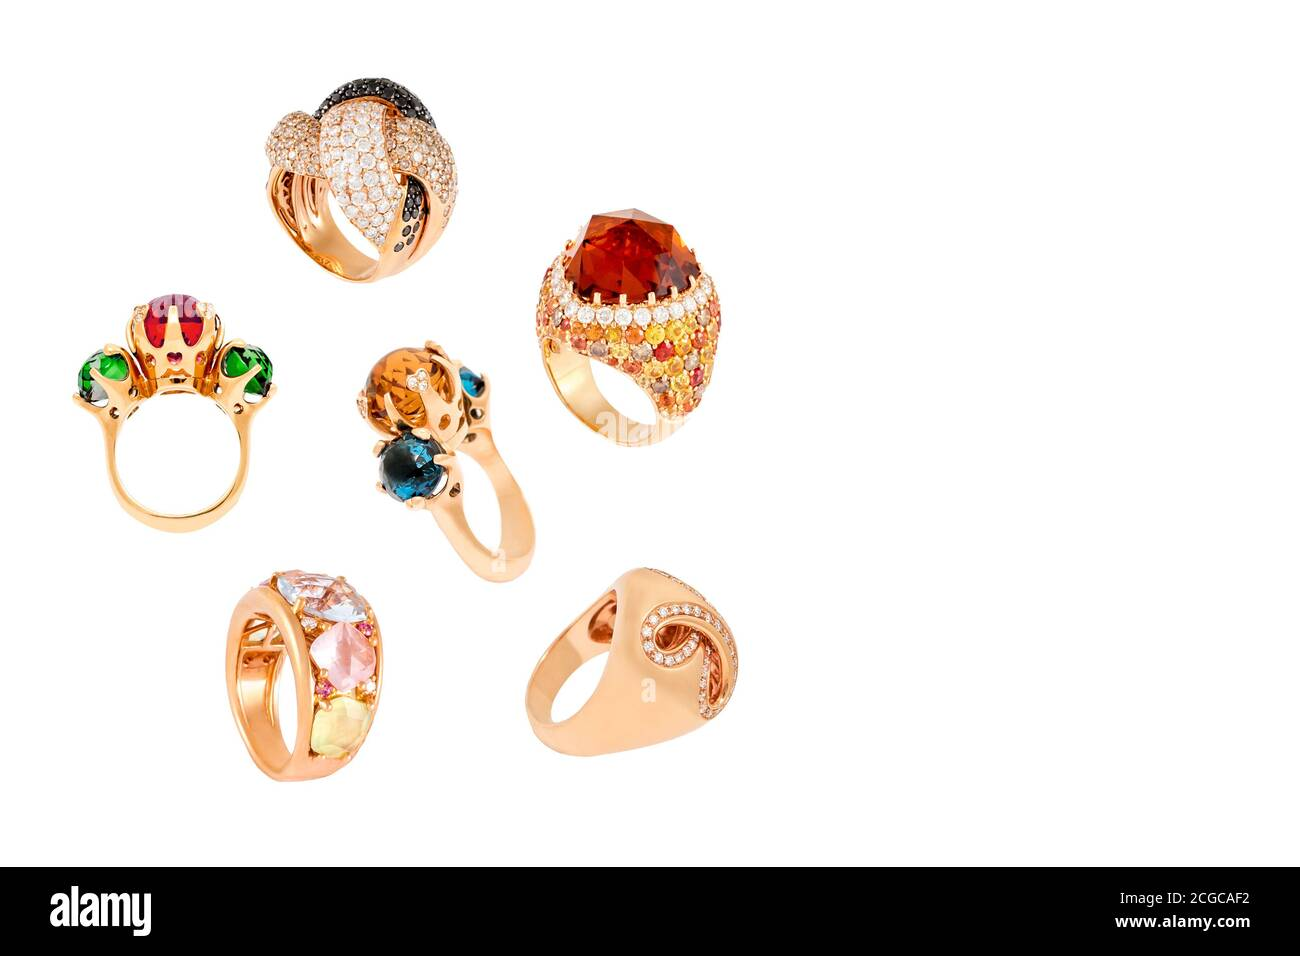 Golden diamond rings isolated on white background. Different rings with diamonds and precious color gemstones. Luxury jewelry, yellow gold, copyspace Stock Photo